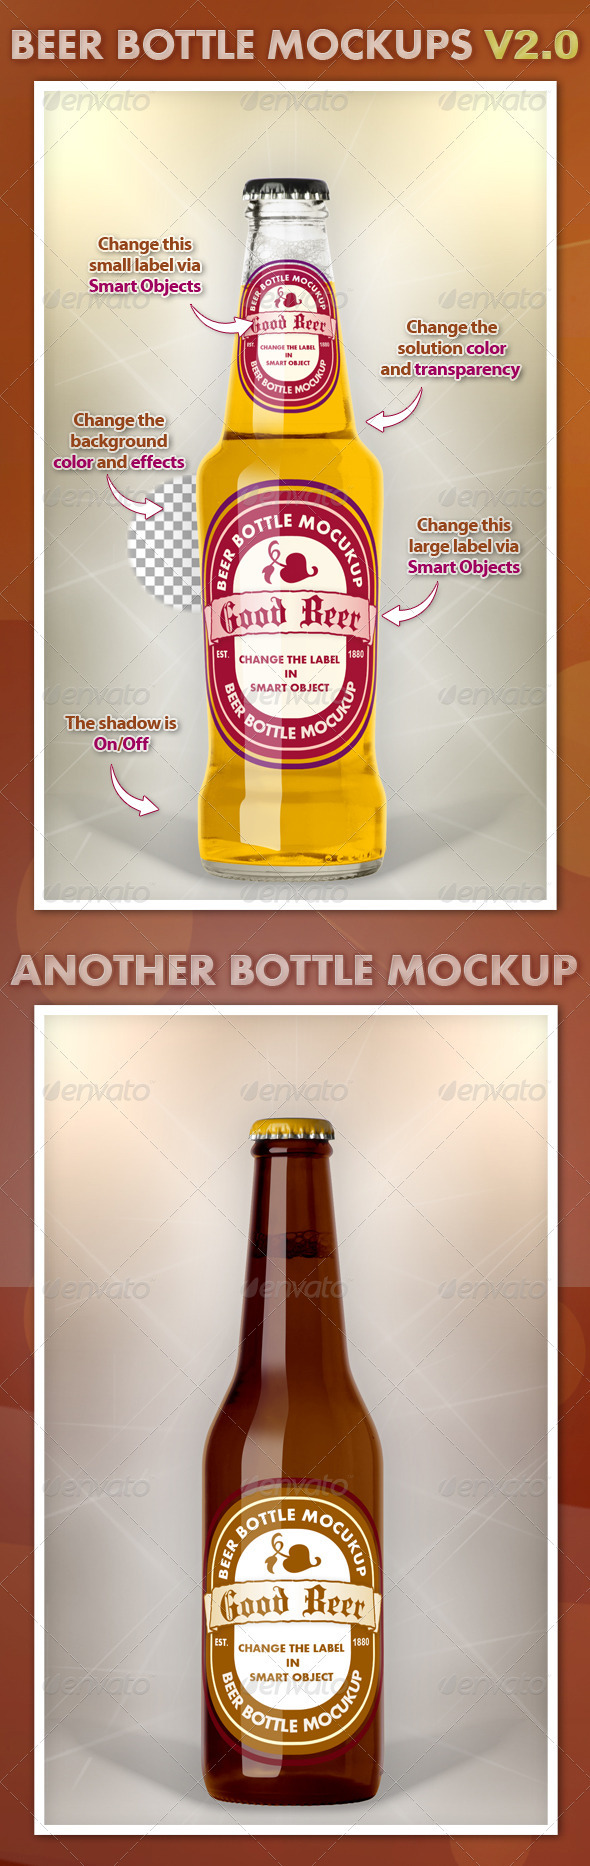 GraphicRiver Beer Bottle Mockups V2.0 3457210